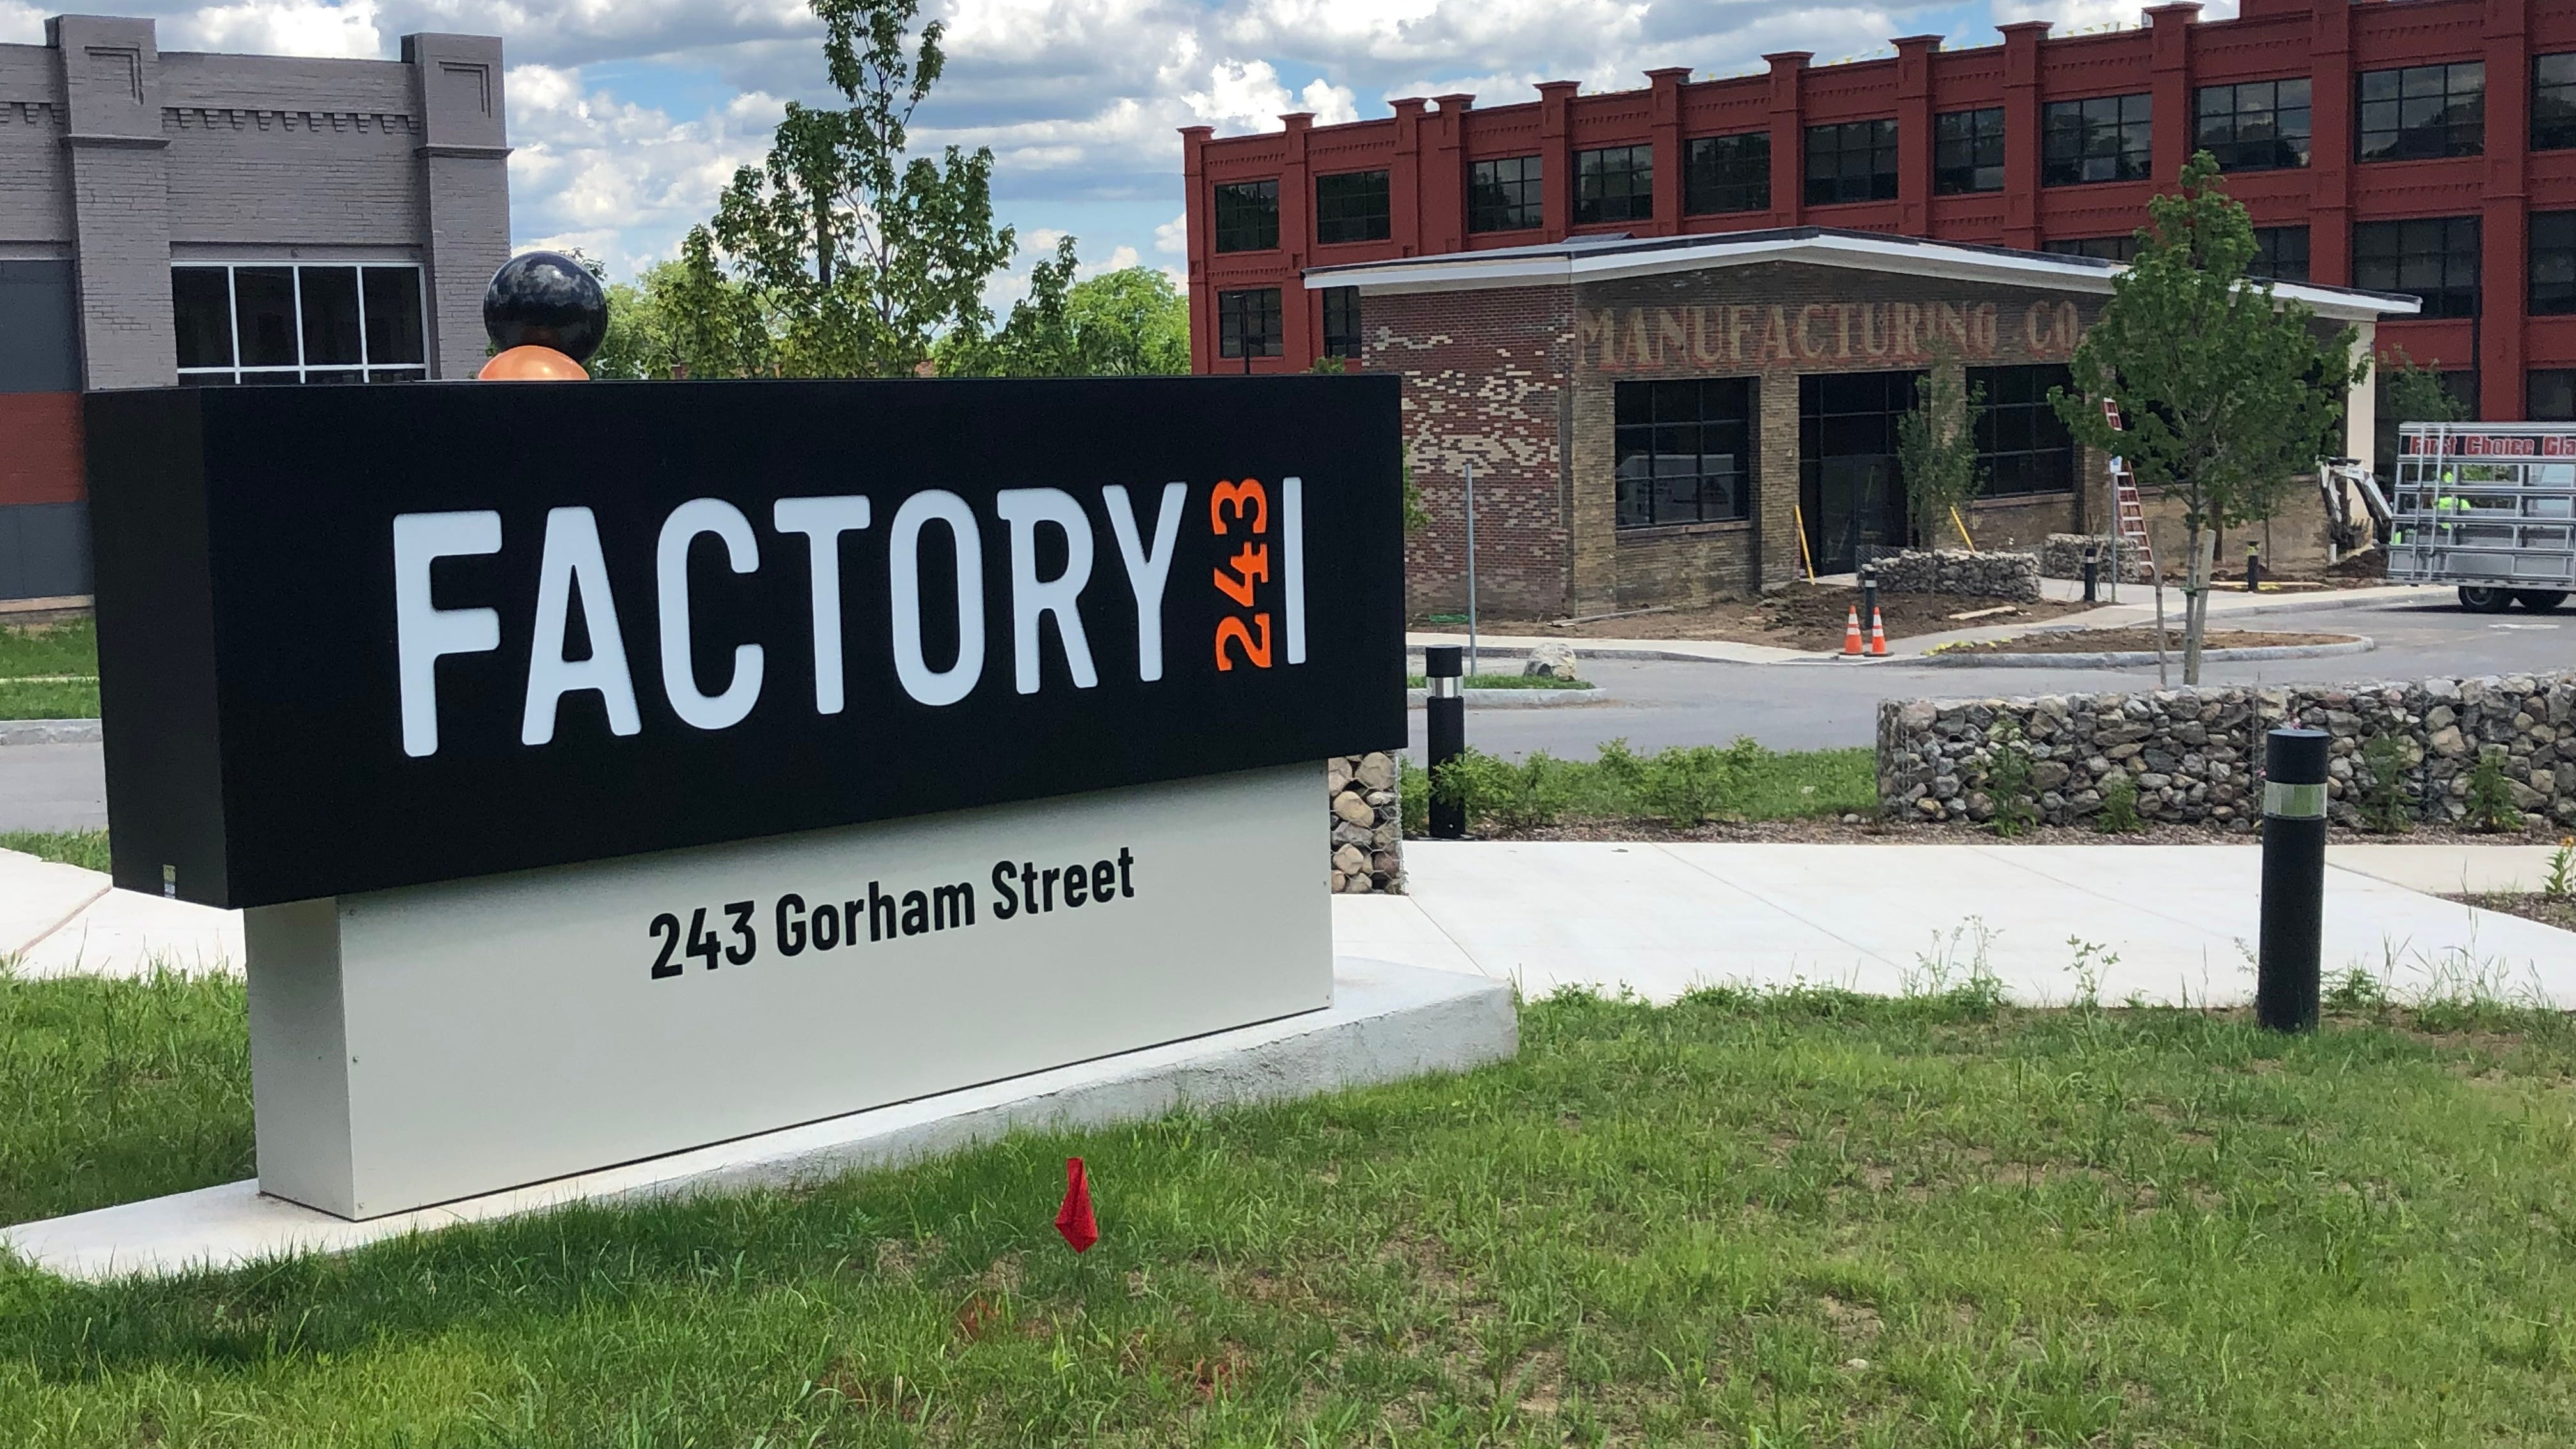 Working Class Coffee will serve residents and workers in Factory 243 as well as people who live in the surrounding Gorham Street, Canandaigua neighborhood.